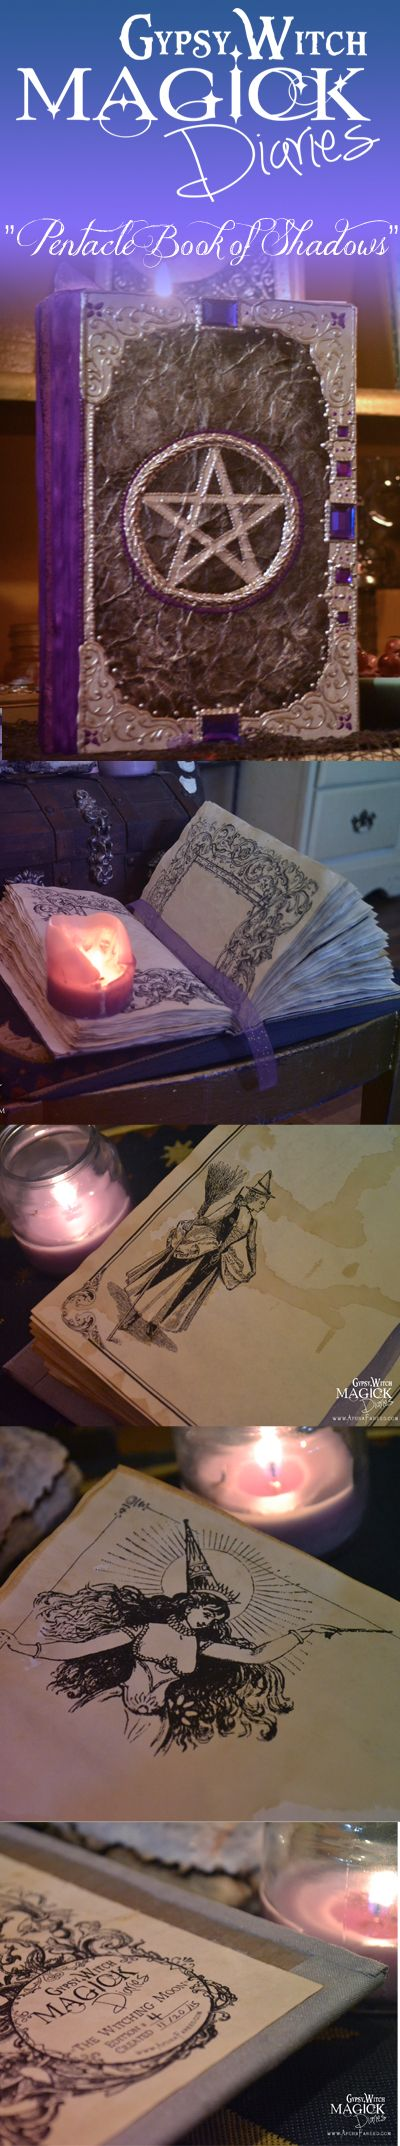 "I live for MAgic...I wouldn't call my magic spell book a book of shadows but rather ""a book of LIGHT"" <3 I love creating new spells & life isn't life without spell casting FUN and magic!"